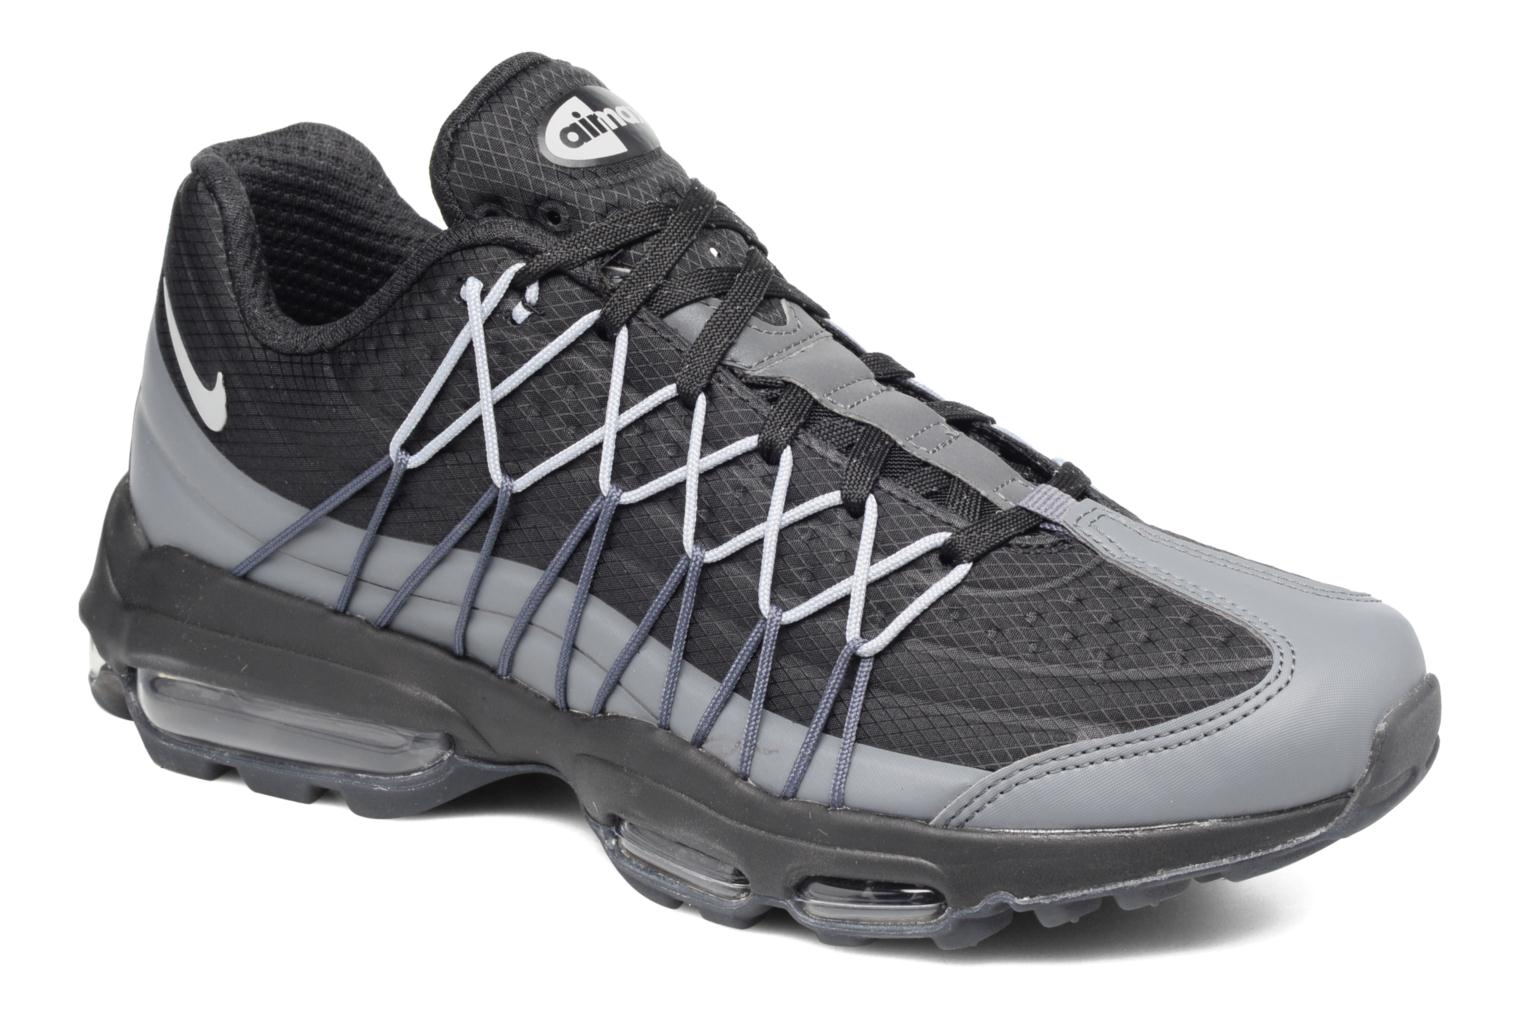 check out 91cf2 76f3b france trainers nike nike air max 95 ultra se grey detailed view pair view  08c53 4c3d2